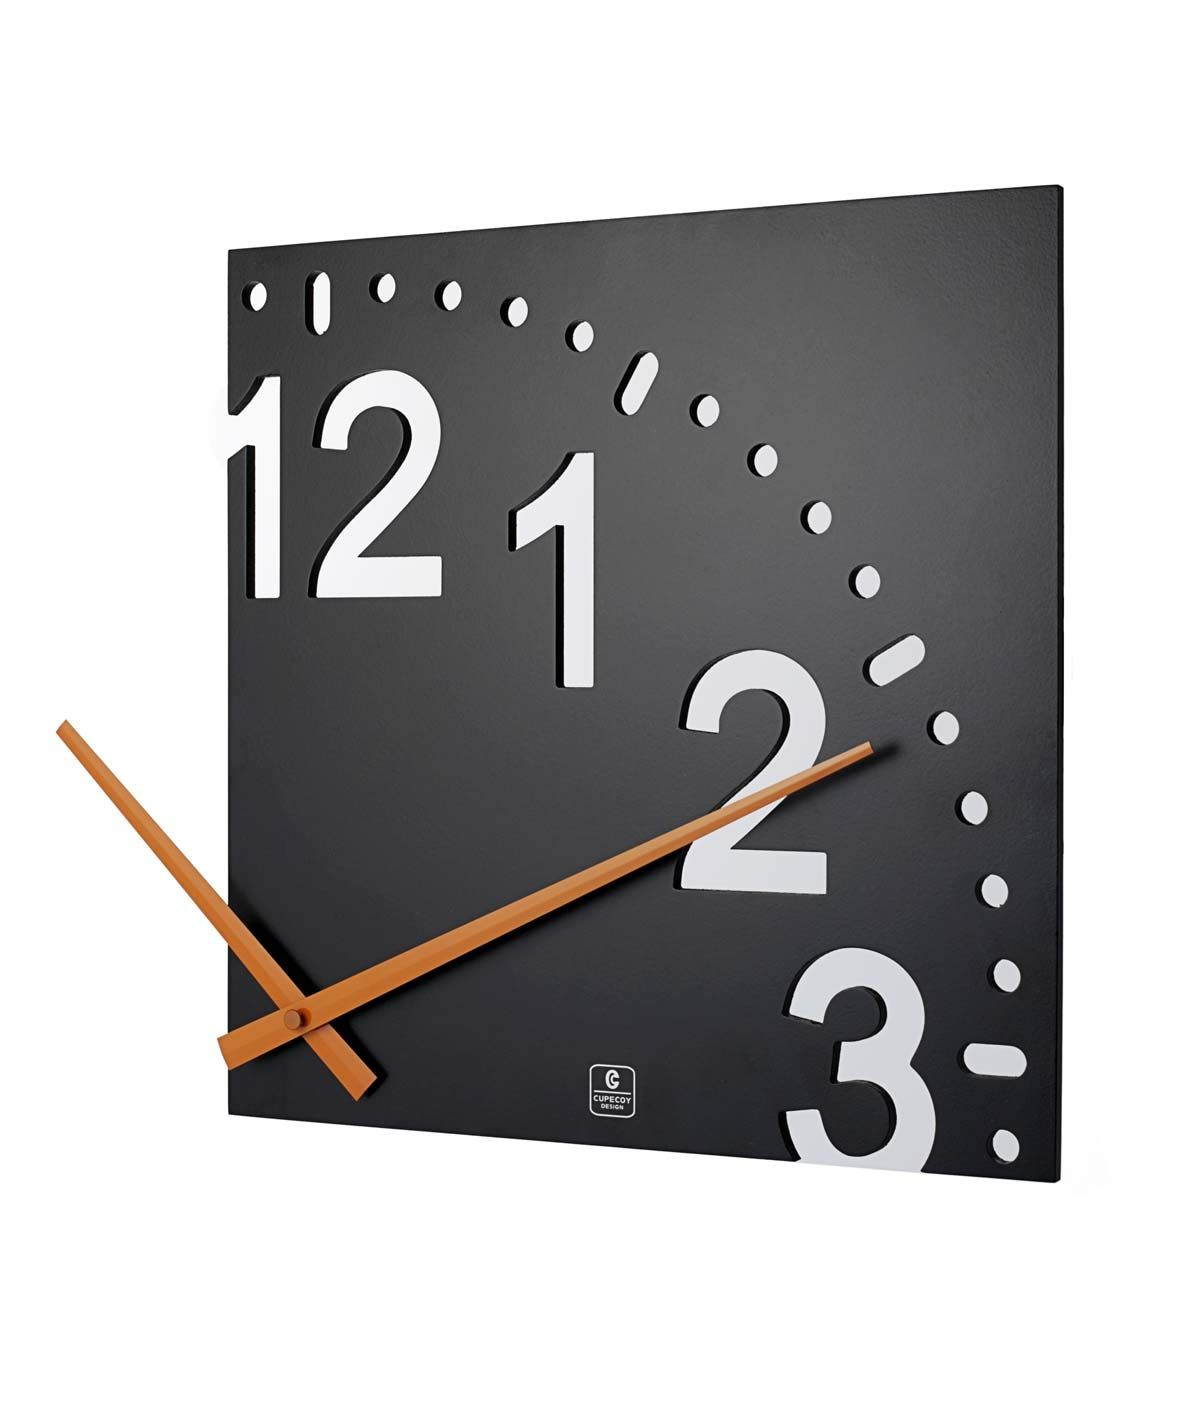 Cool Clocks Are Cool In The Office Too! INFINITY WOODEN WALL CLOCK | Modern  Design